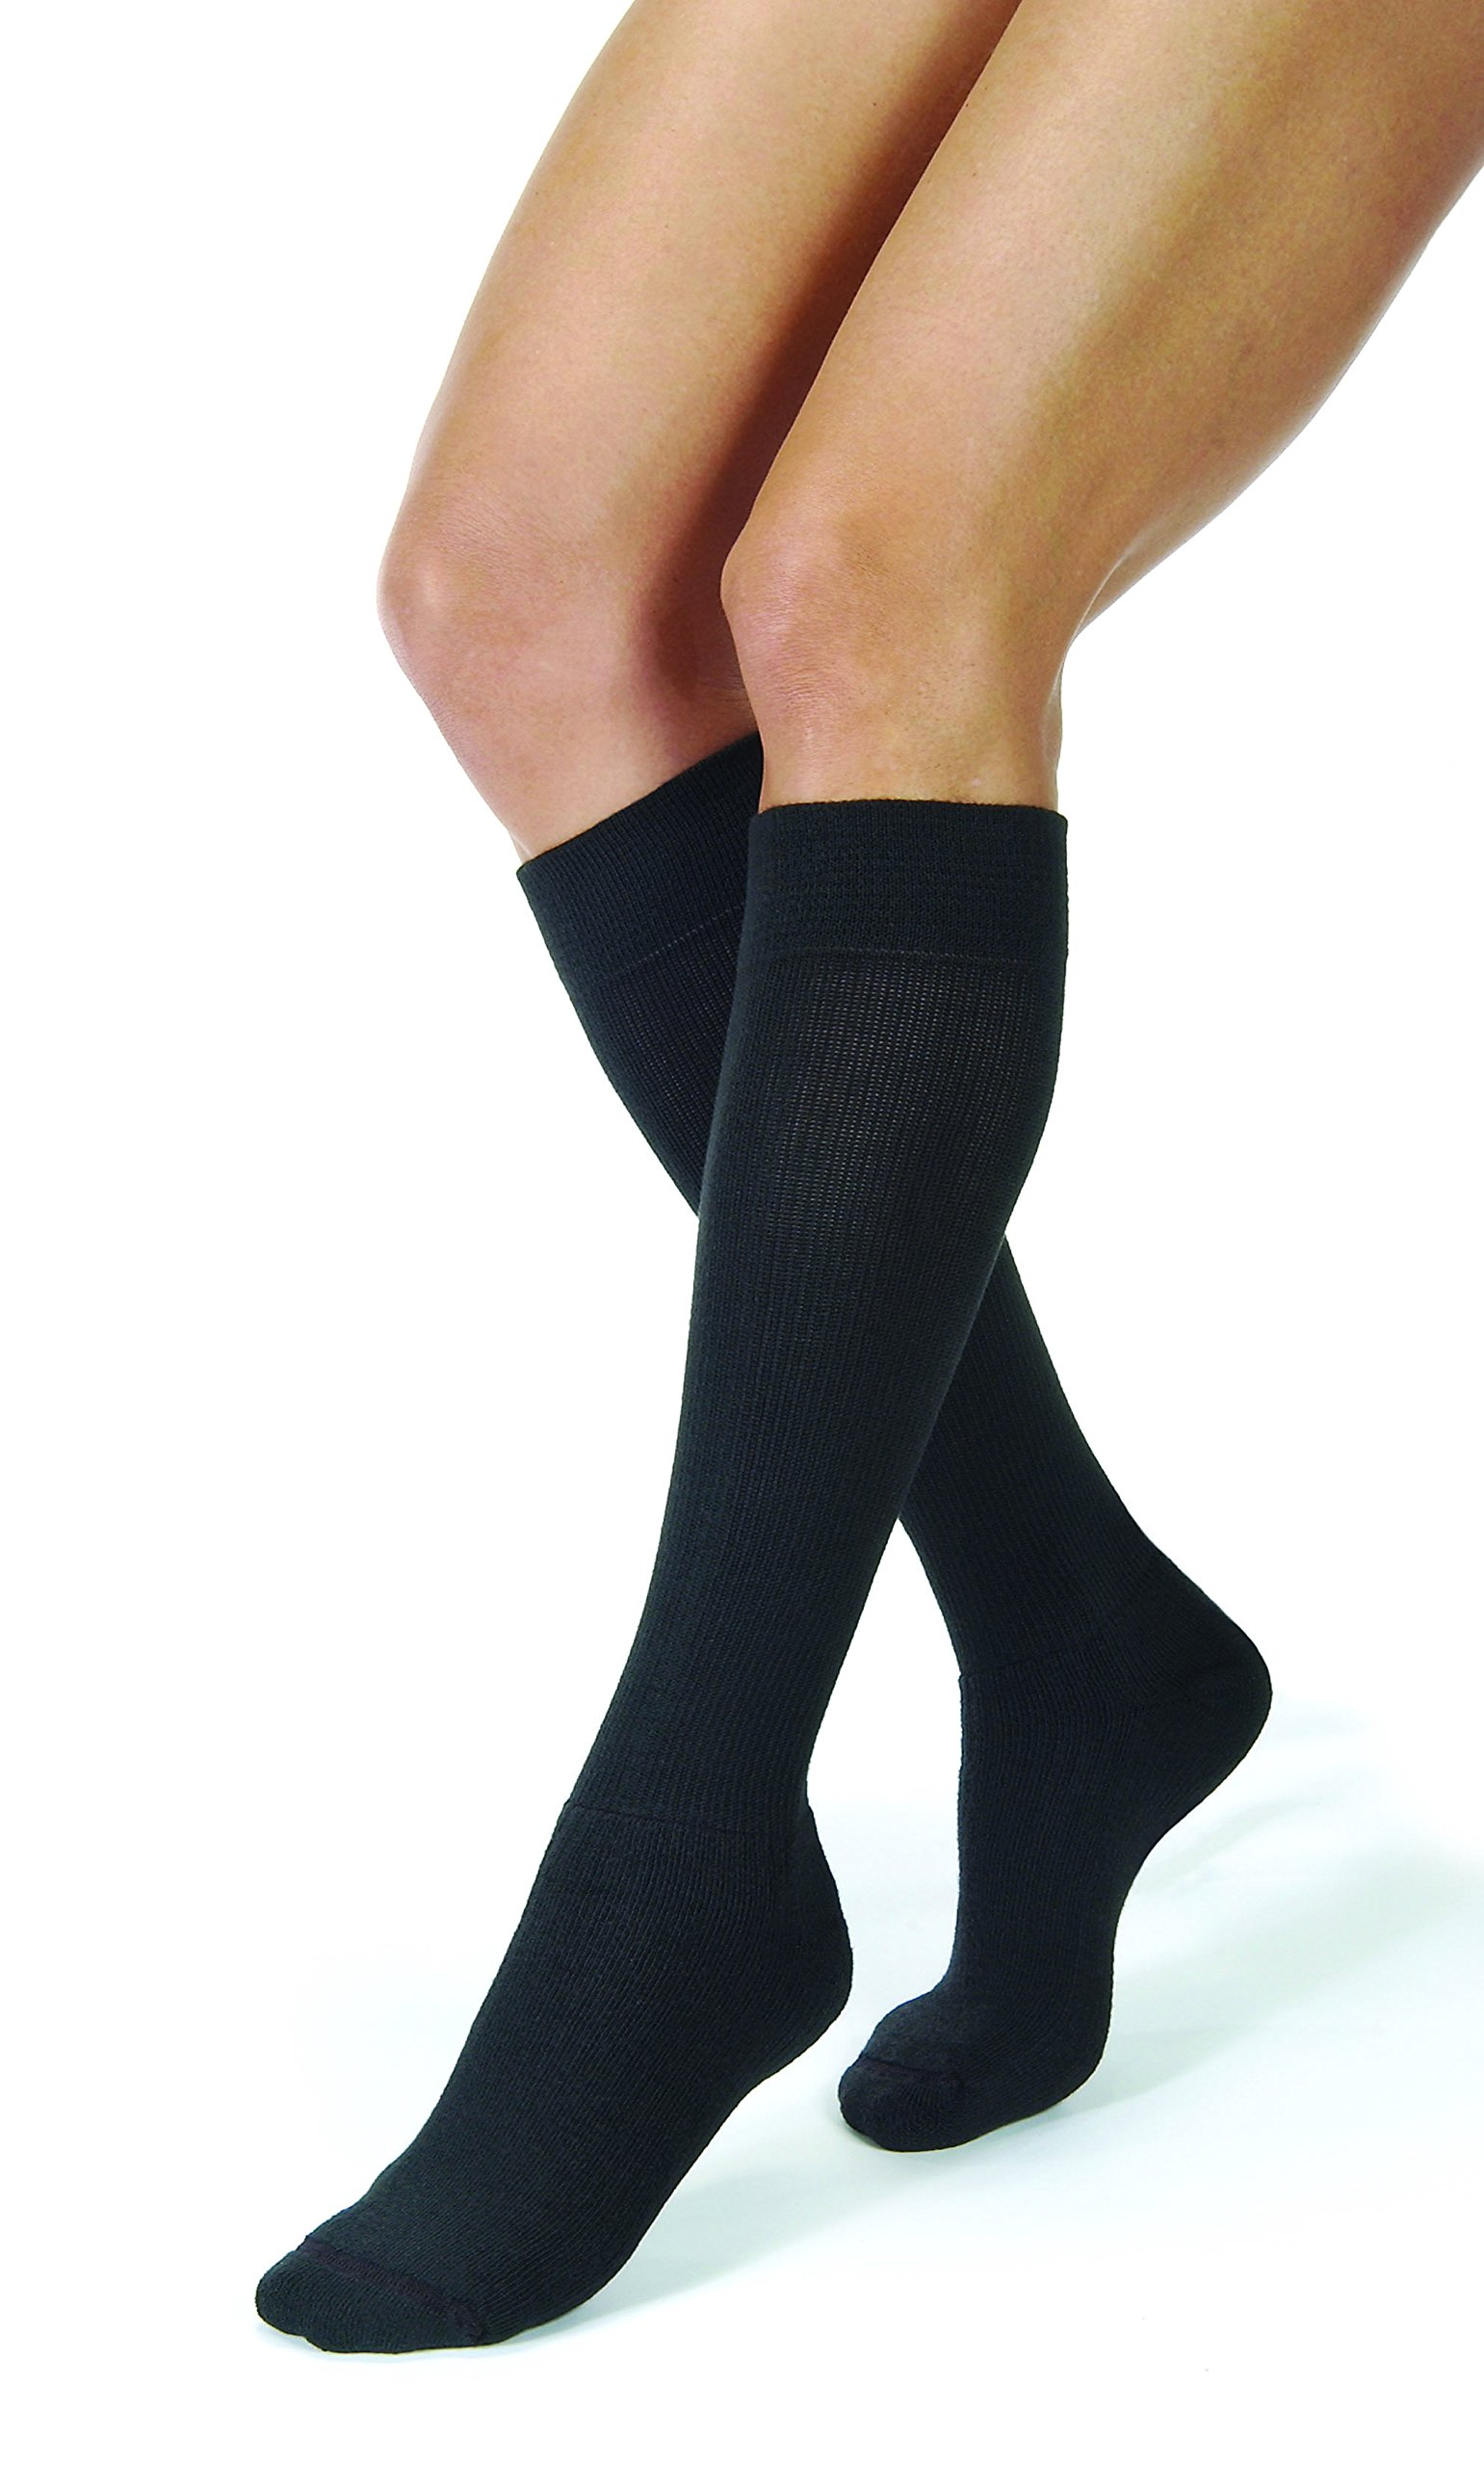 50a88f109d3 Amazon.com  Jobst For Men Firm Support Over-the-Calf Dress Socks ...